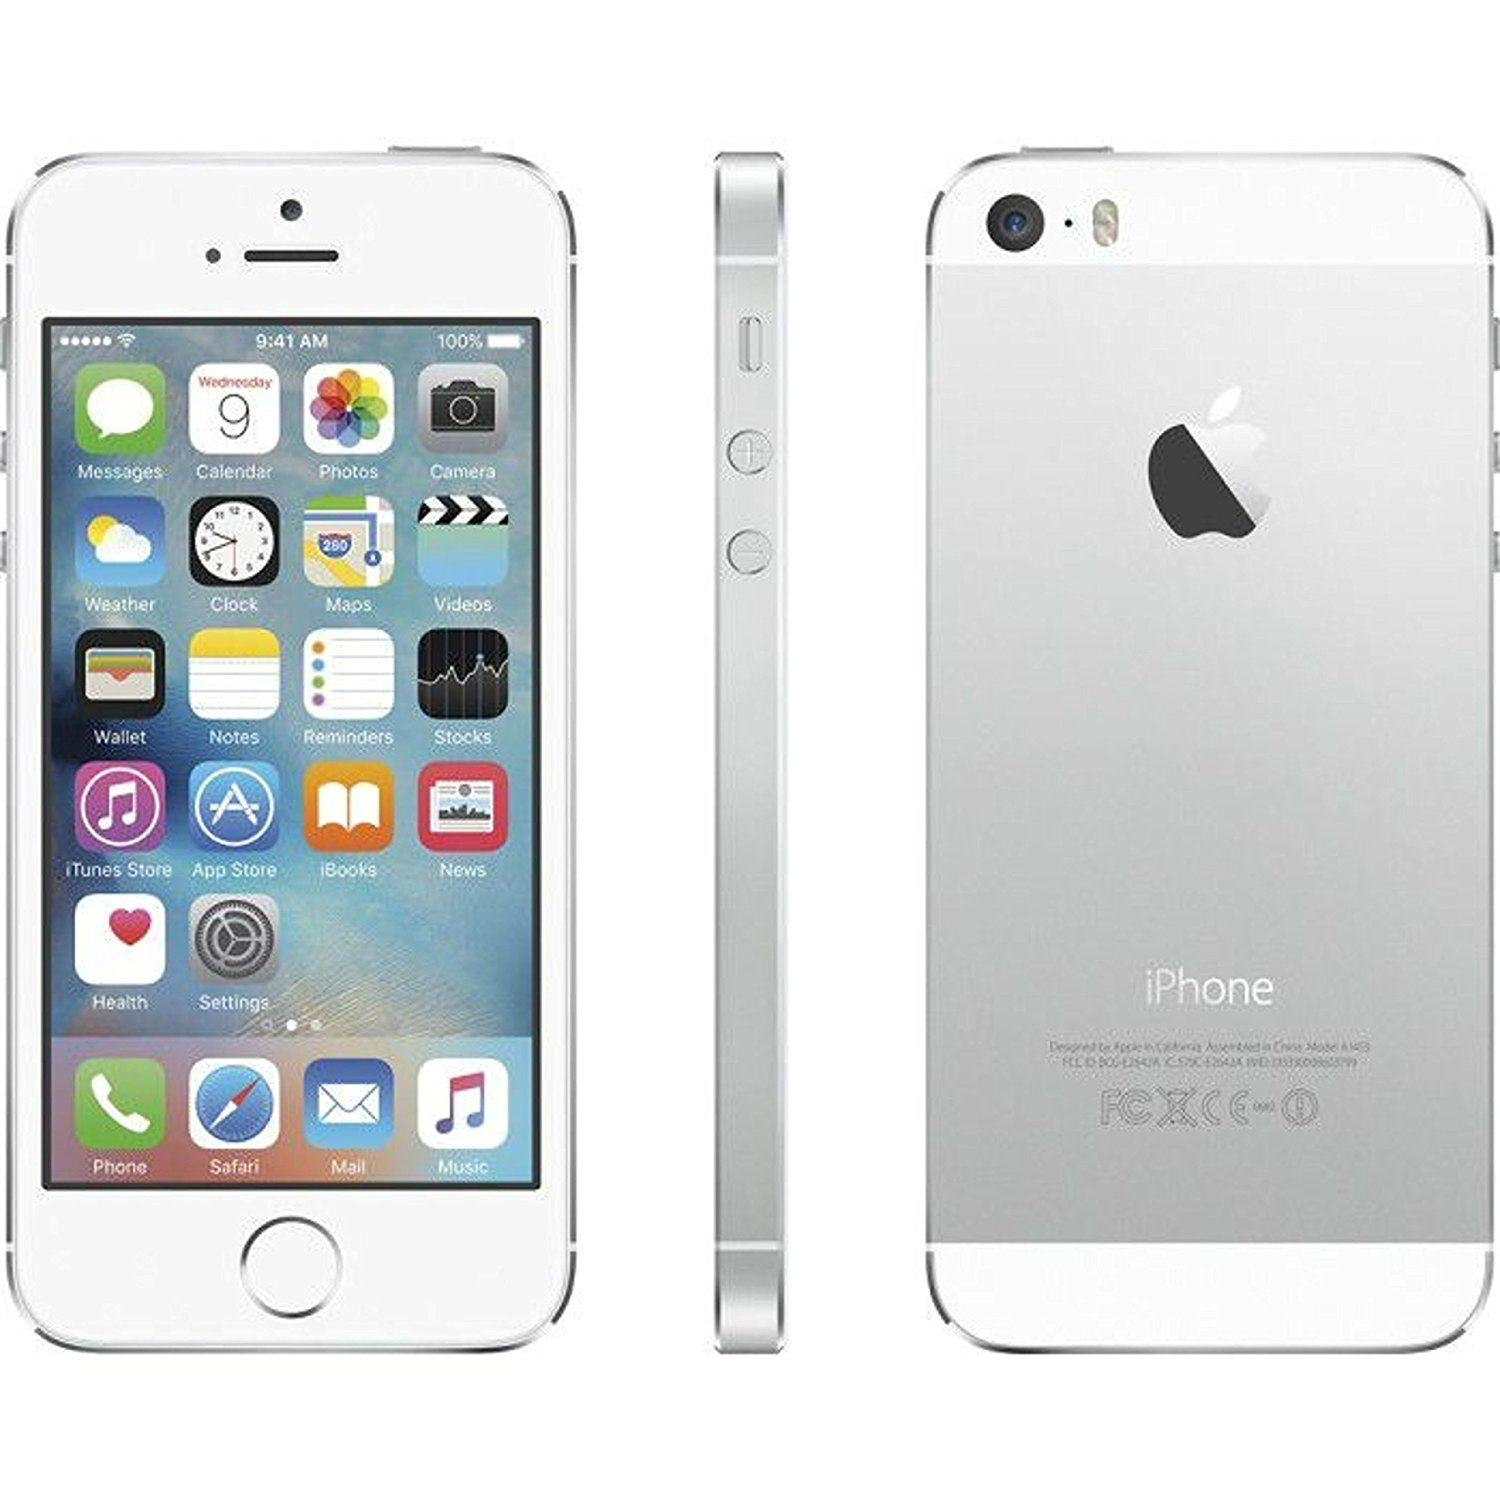 iphone 5 on sale apple iphone 5s for in jamaica jadeals 2170